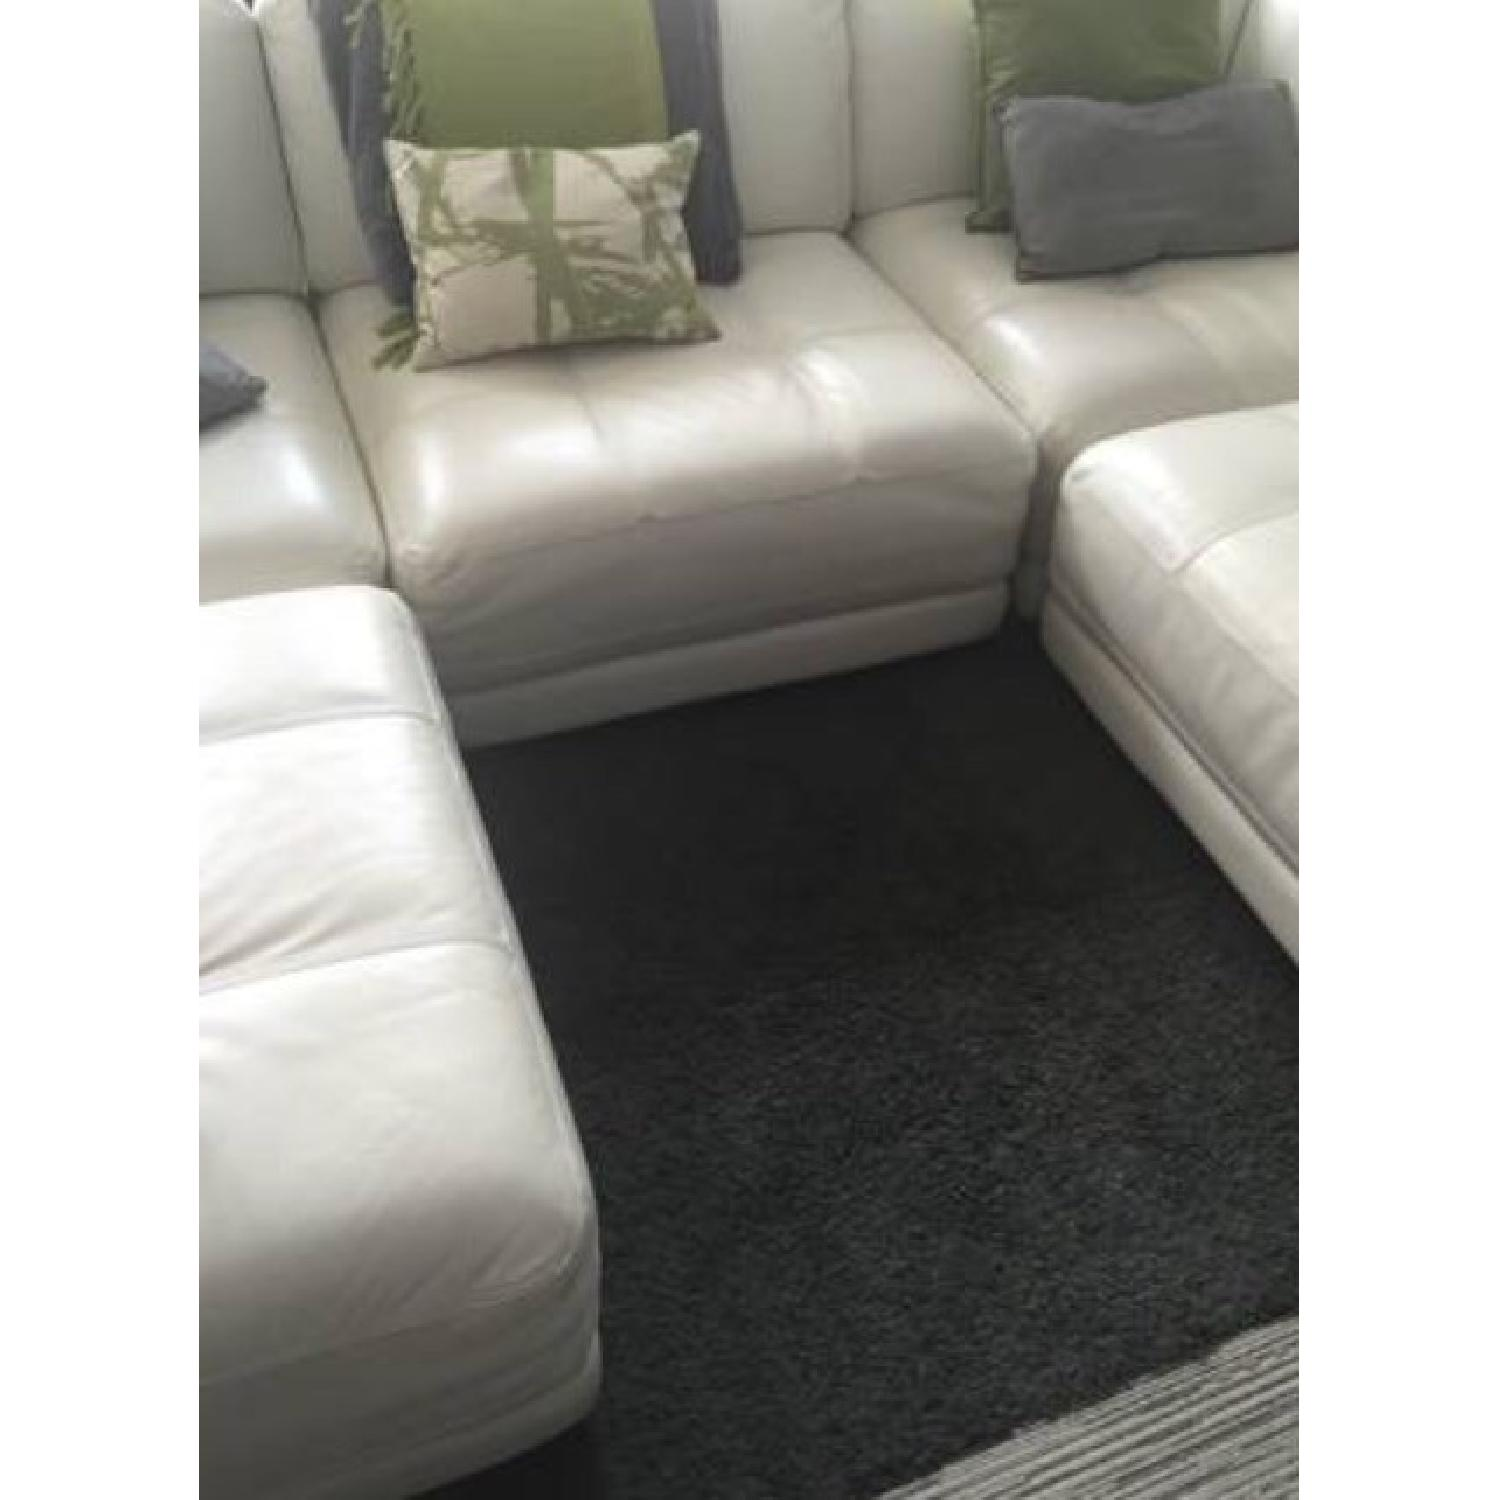 Vice Versa White Leather Modular Couch - image-1